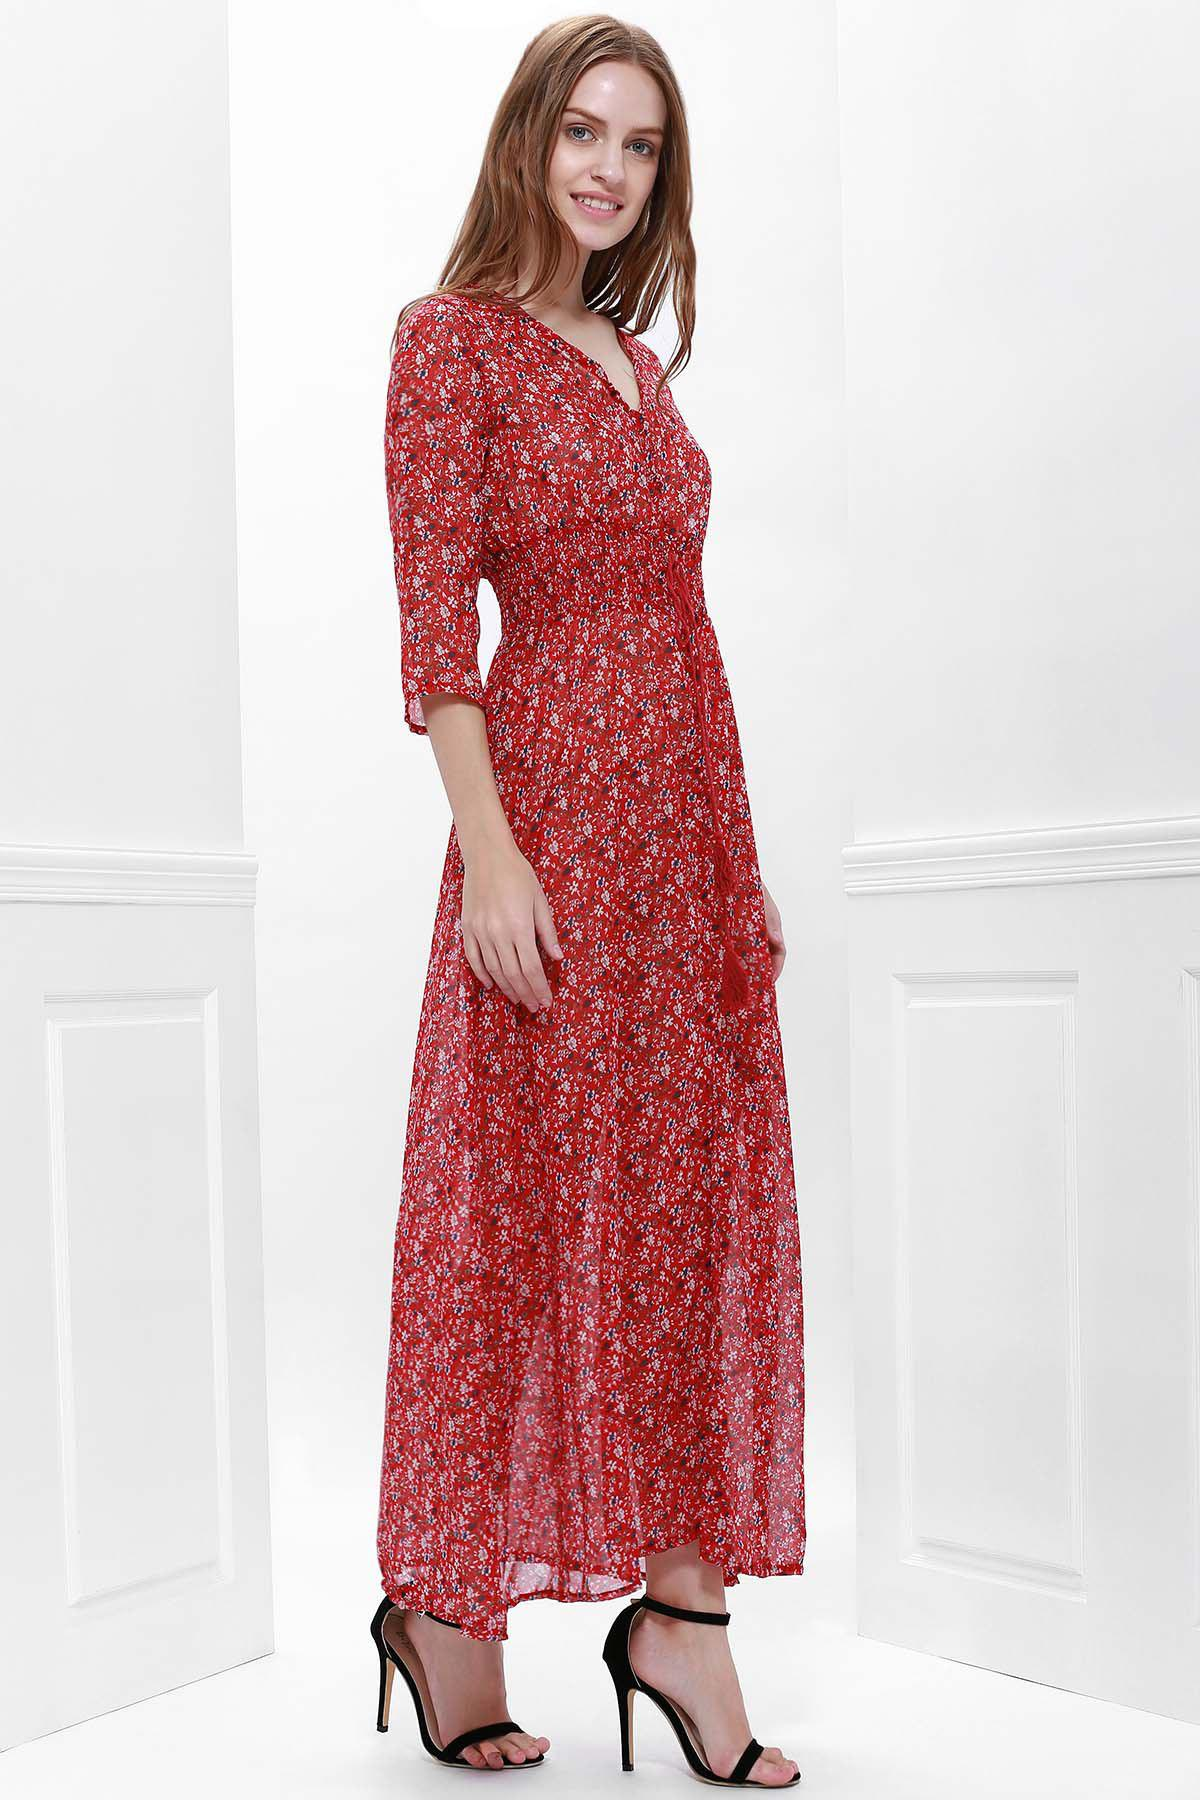 Printed High Slit Maxi Dress with Sleeves - RED L